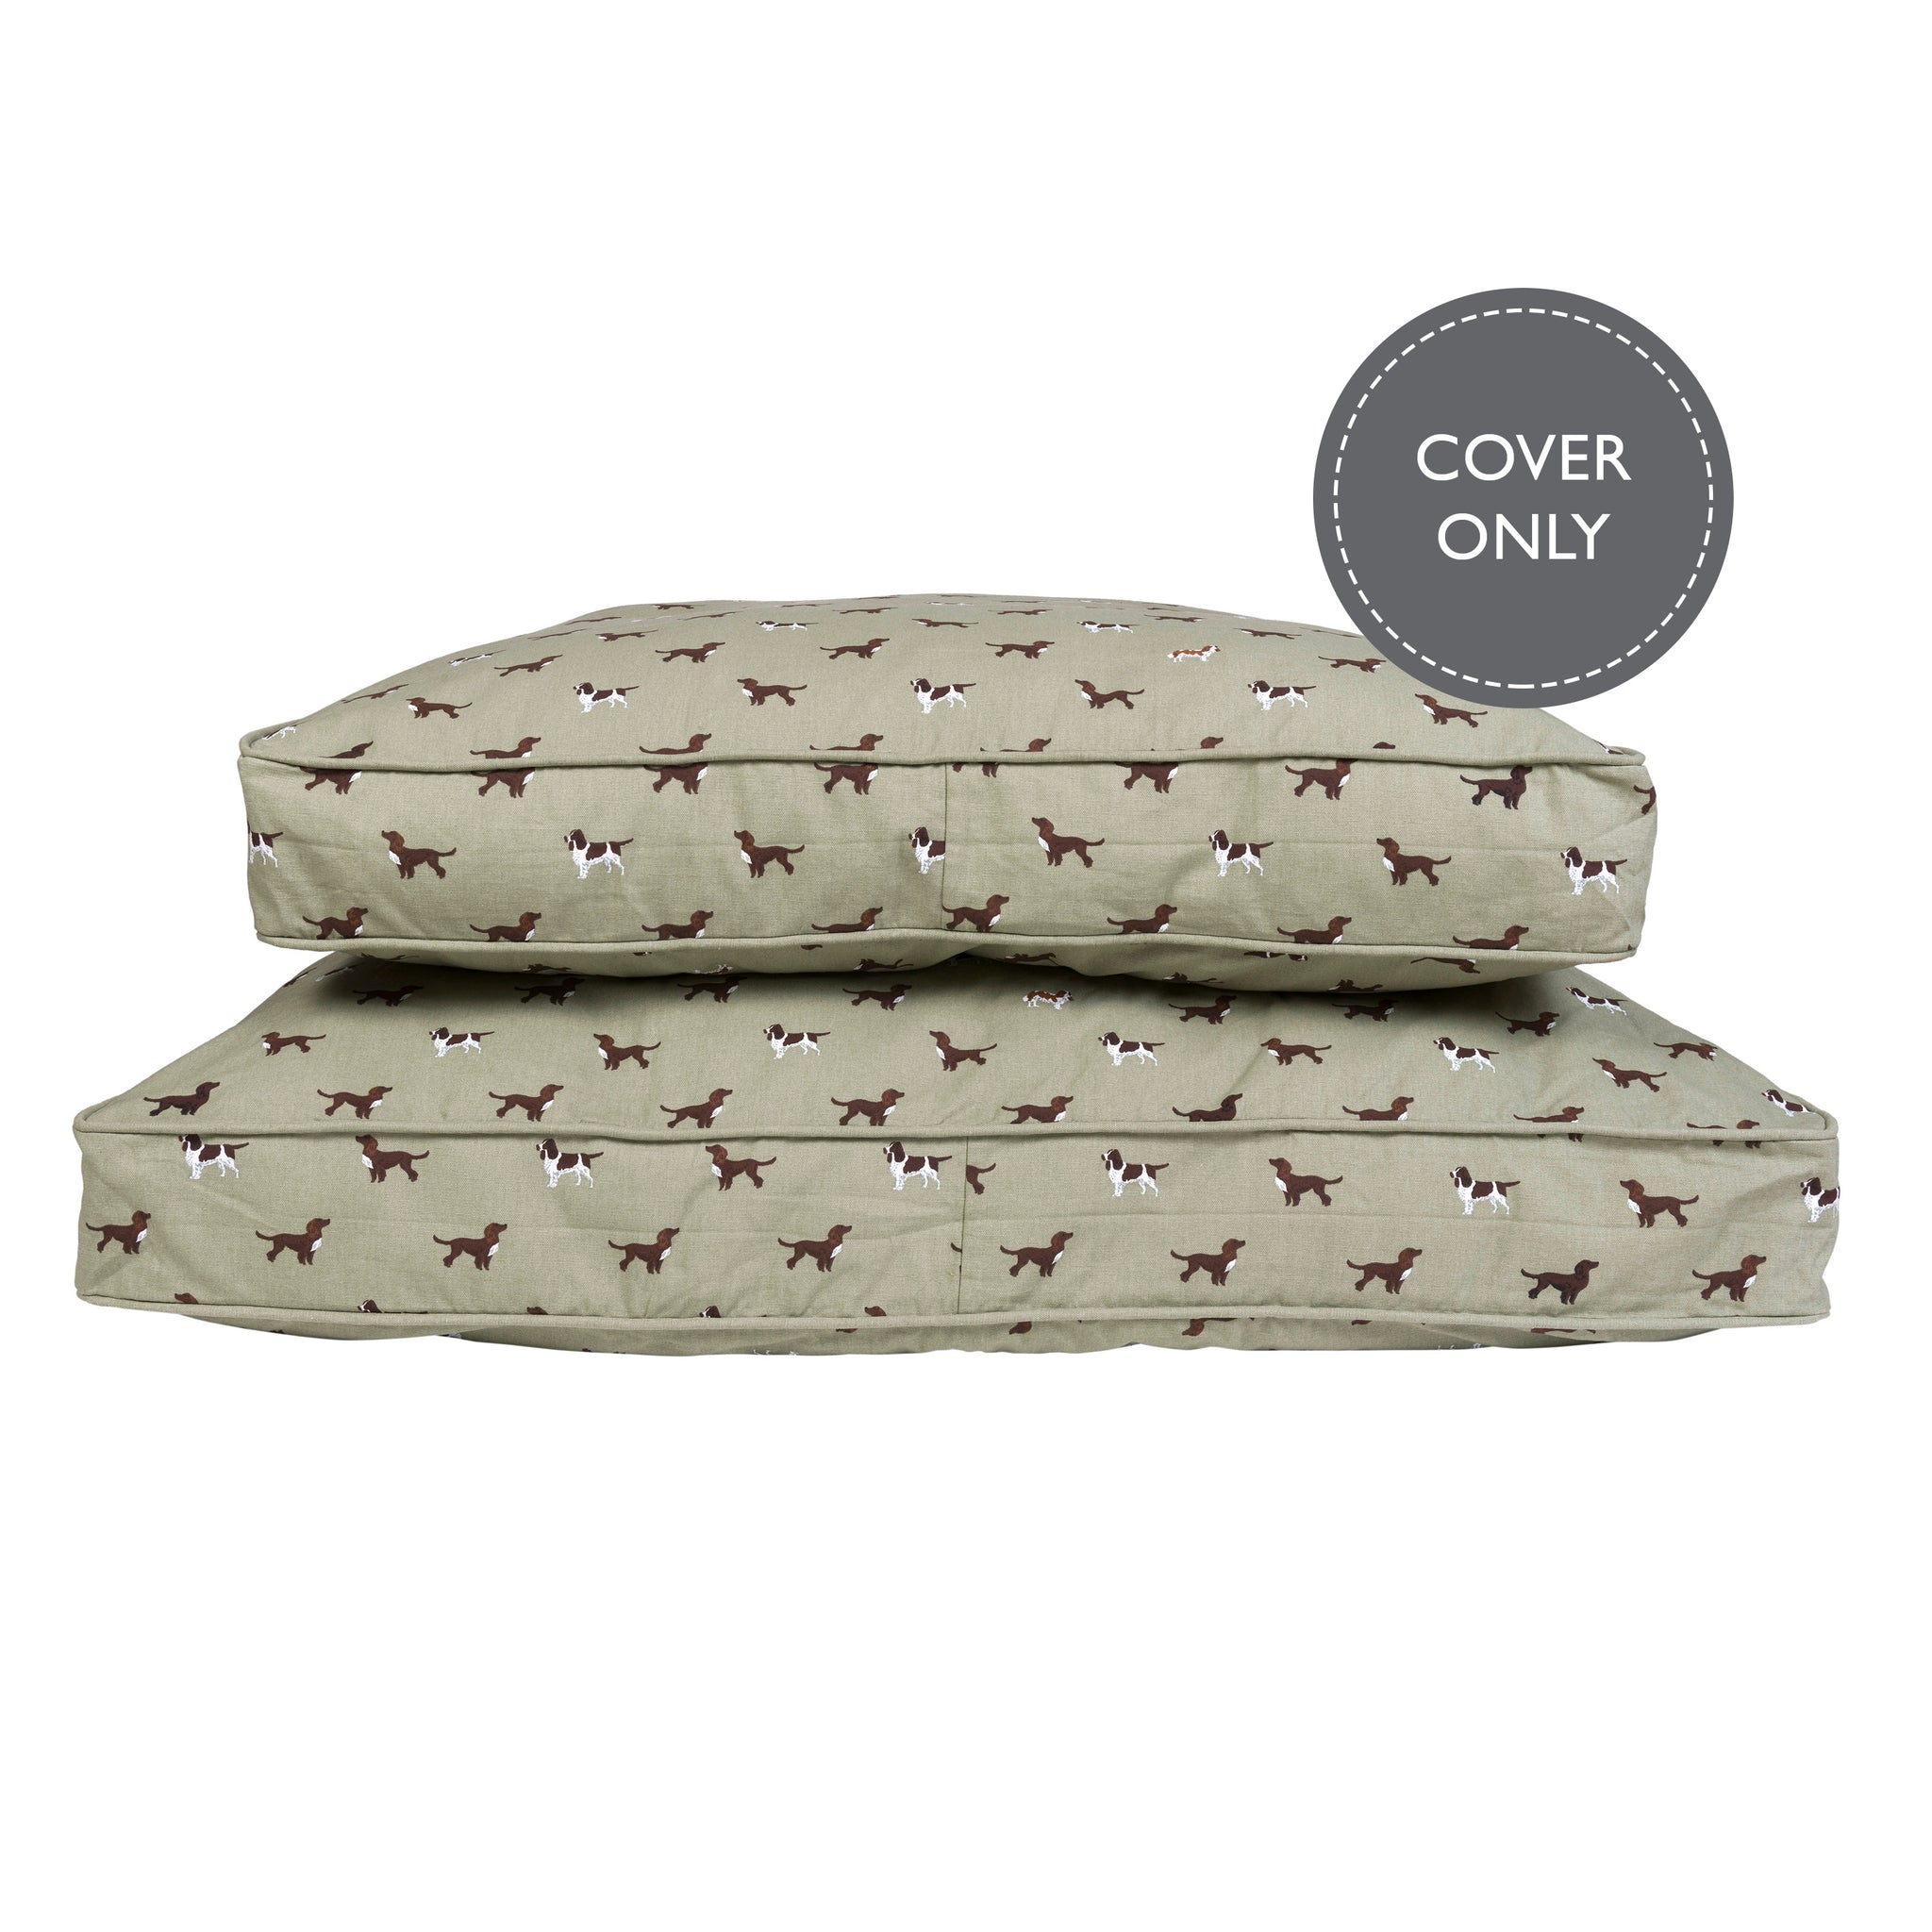 Spaniels dog bed cover by Sophie Allport